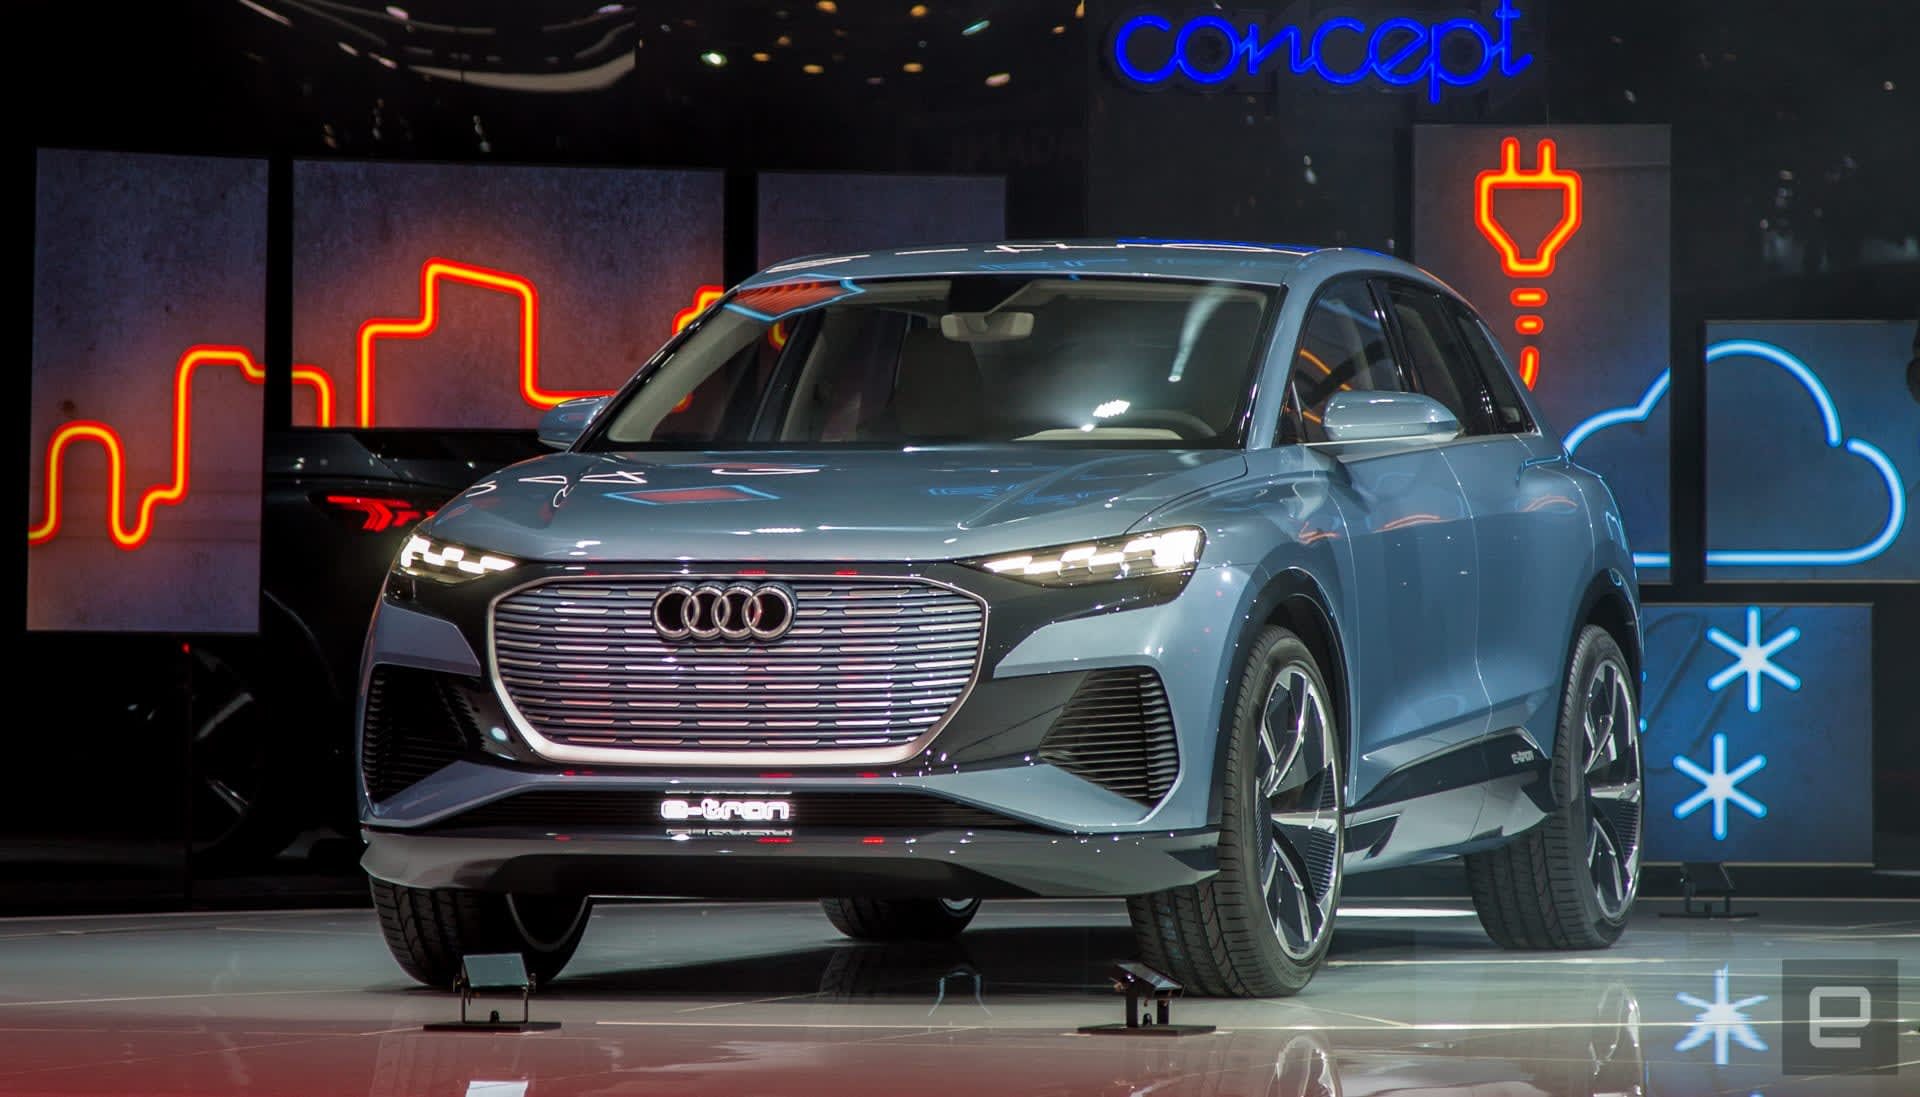 Audi's E-Tron line gets a bit more crowded with the Q4 crossover concept